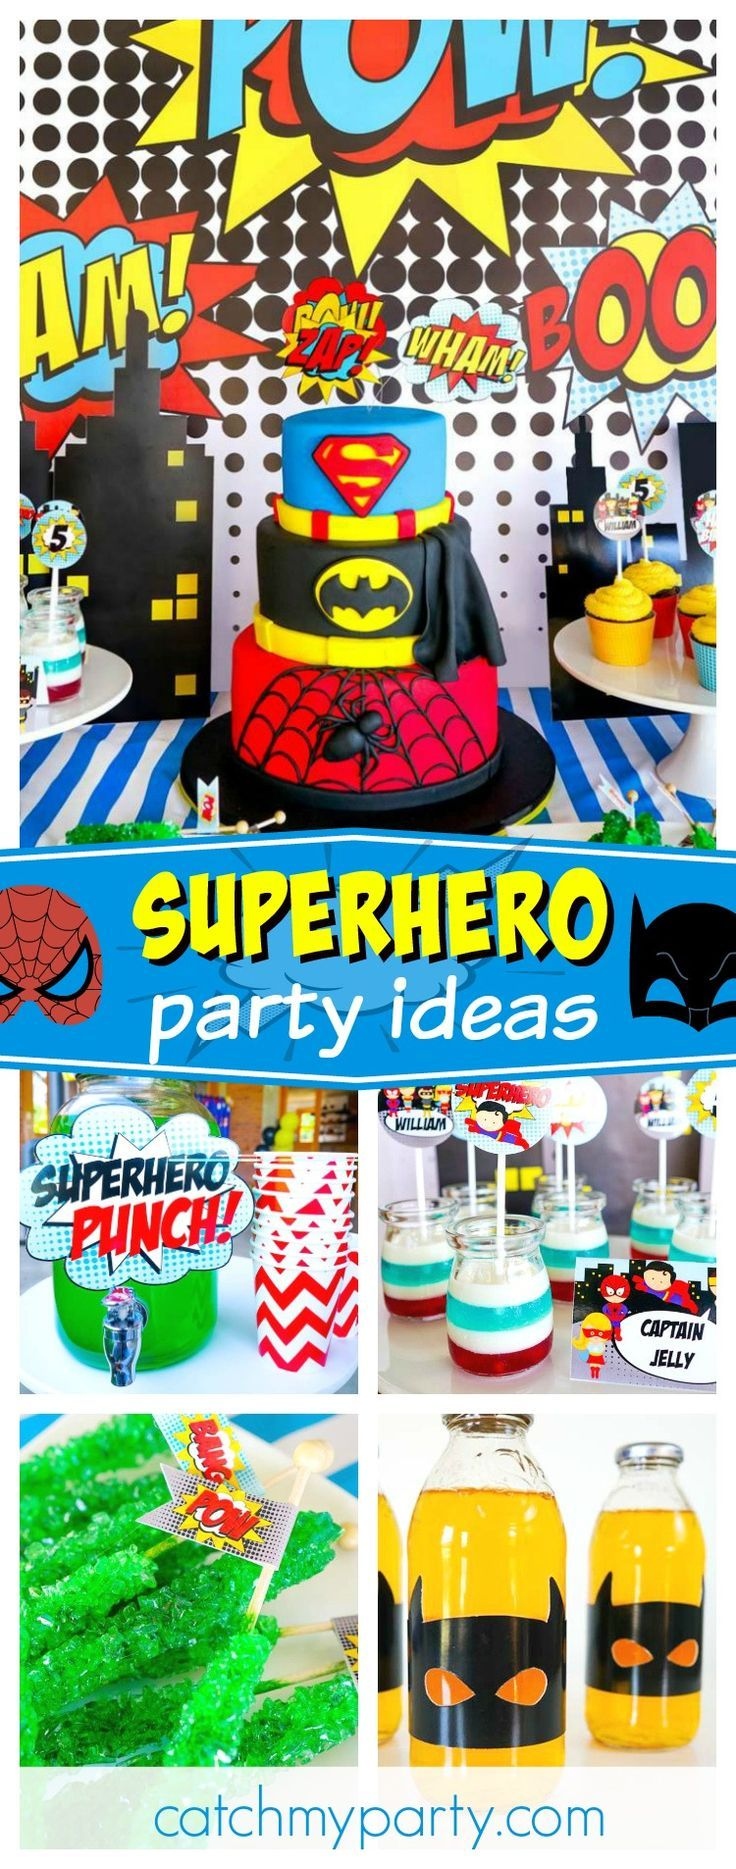 Check out this 'Pow-erful' Superhero Birthday Party!! The tiered superhero birthday cake is fantastic!! See more party ideas andshare yours at http://CatchMyParty.com